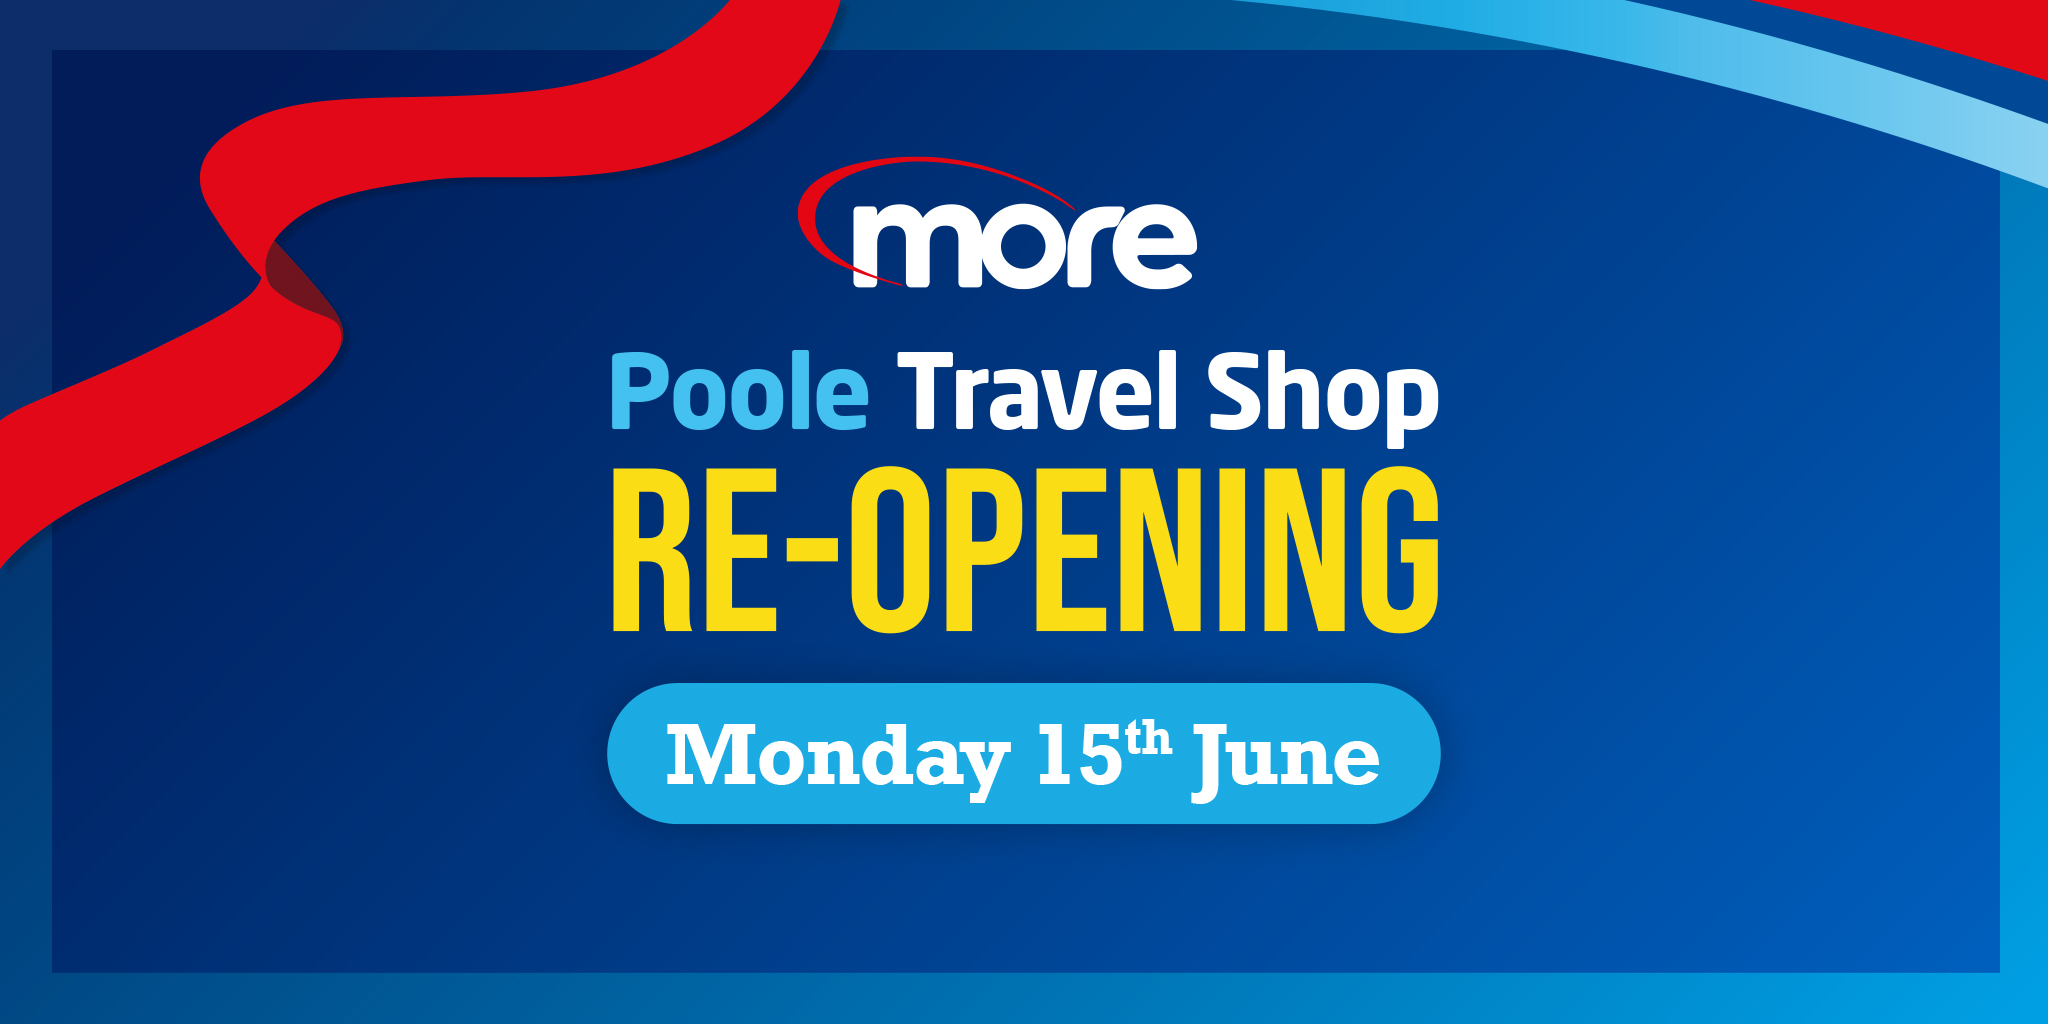 Image reading 'more Poole Travel Shop Re-opening Monday 15th June'